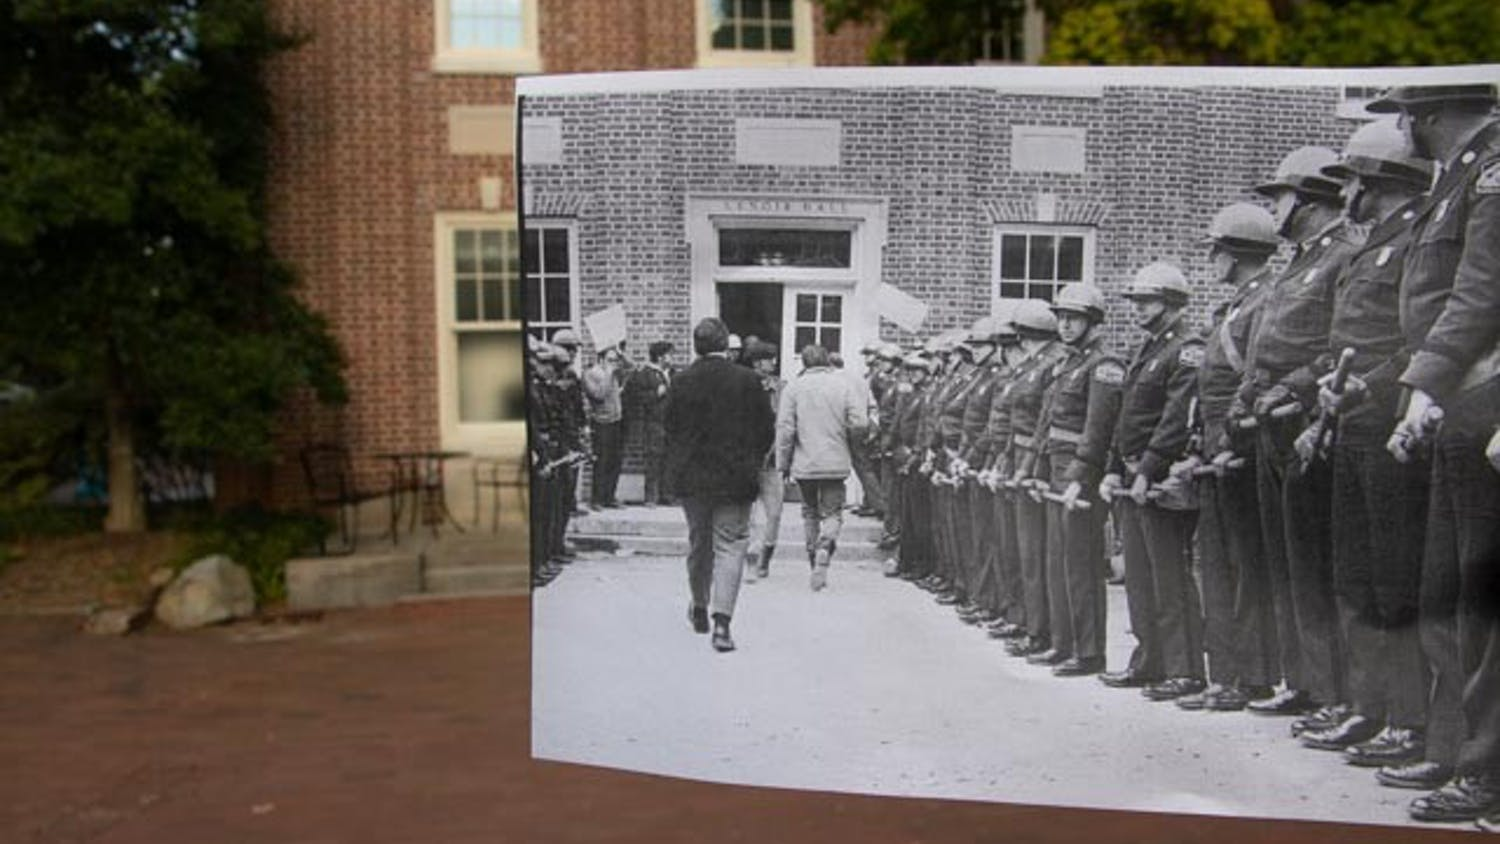 Lenoir Hall pictured on Sep. 14 juxtaposed with a photograph by Fil Hunter from the Food Workers' Strike of 1969. In the spring of 1969, dining hall workers went on strike with the support of the Black Student Movement.